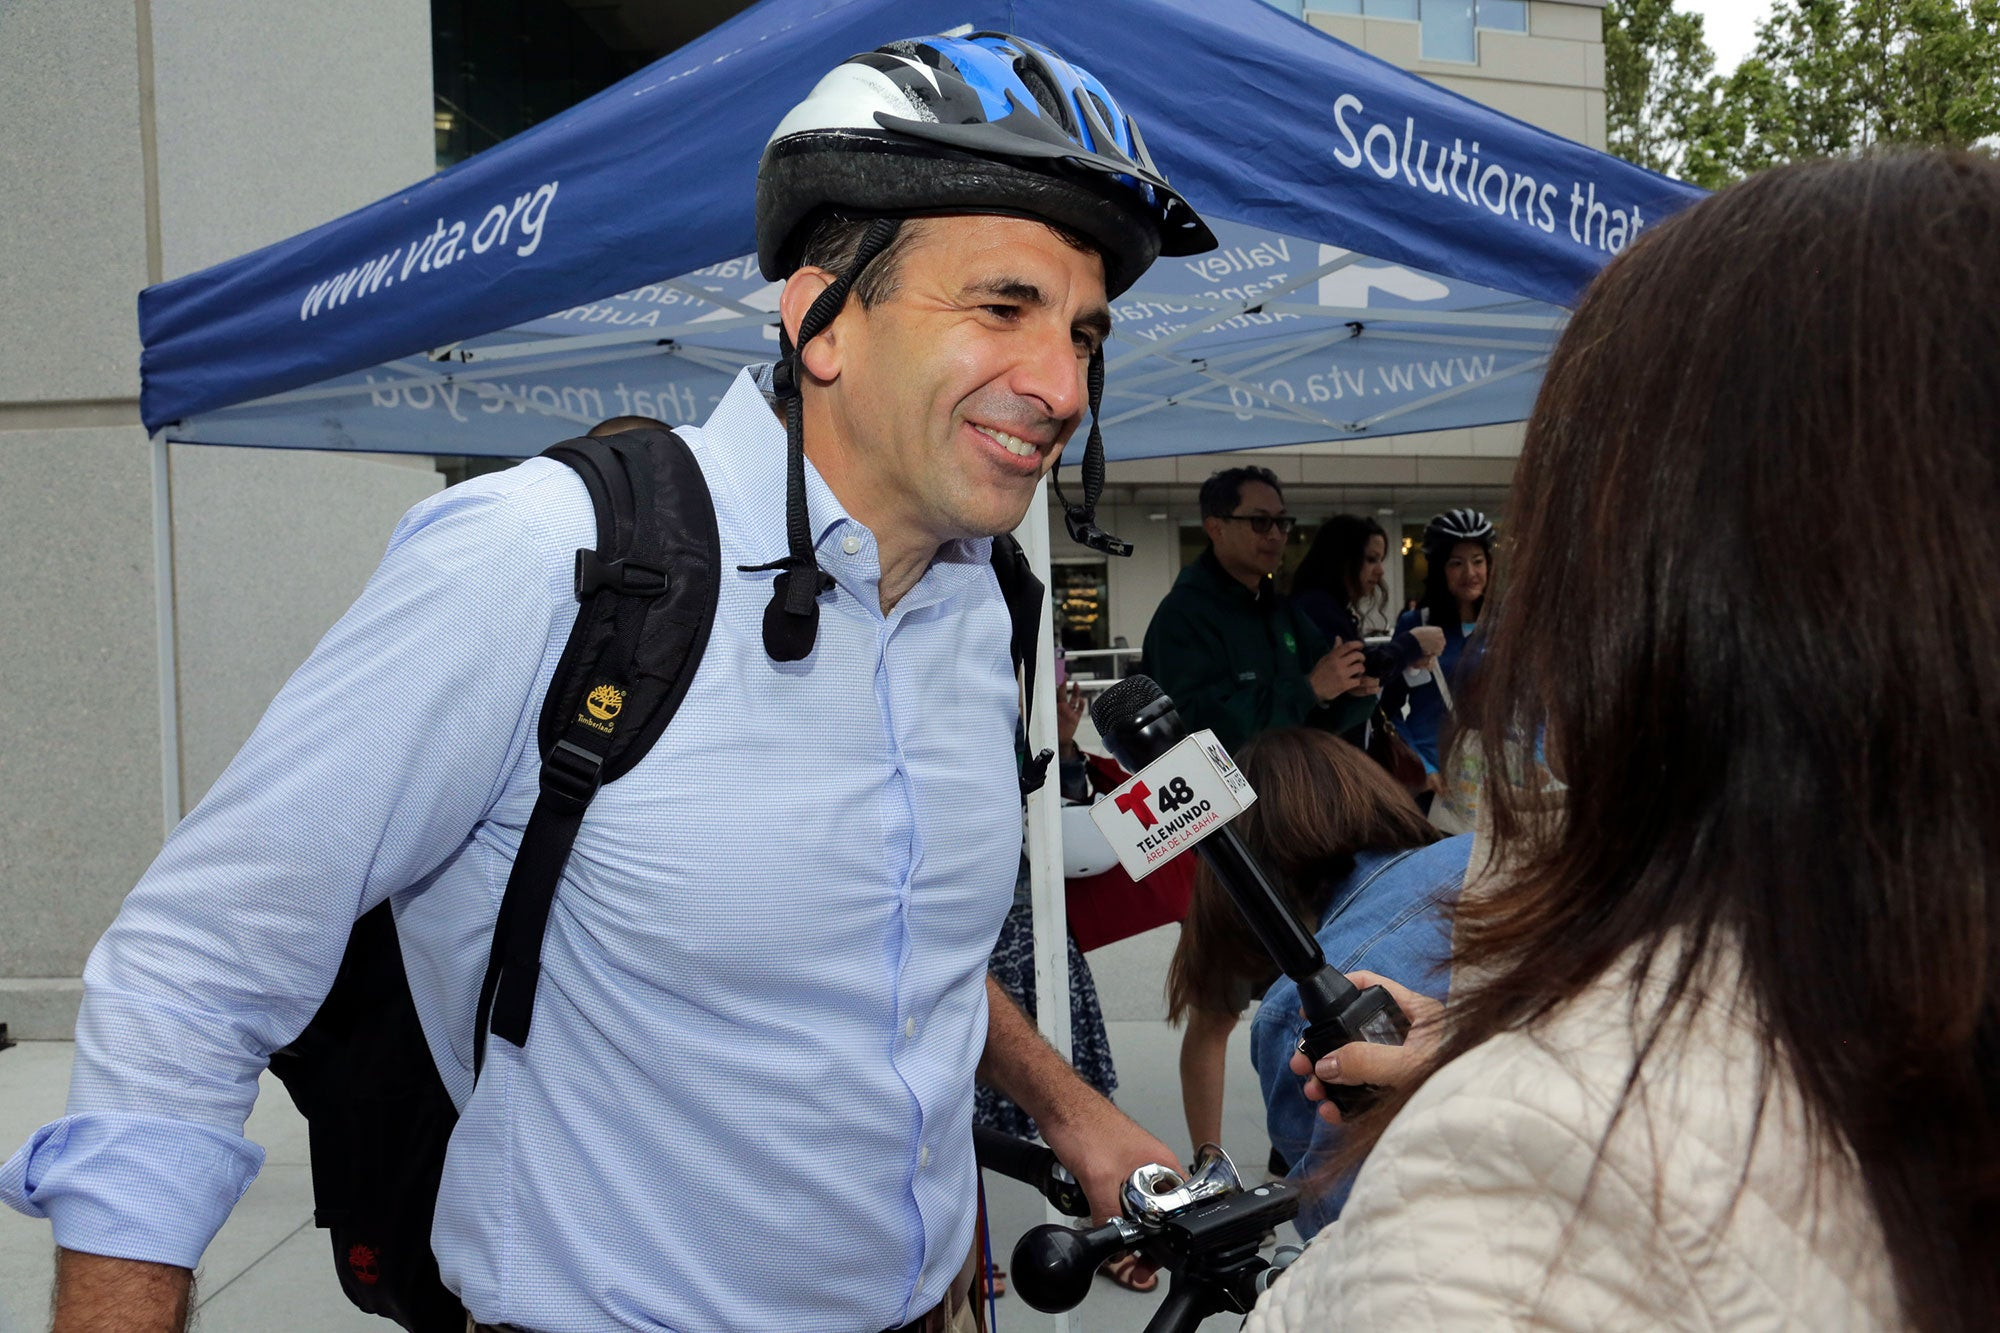 MTC Commissioner and San Jose Mayor Sam Liccardo